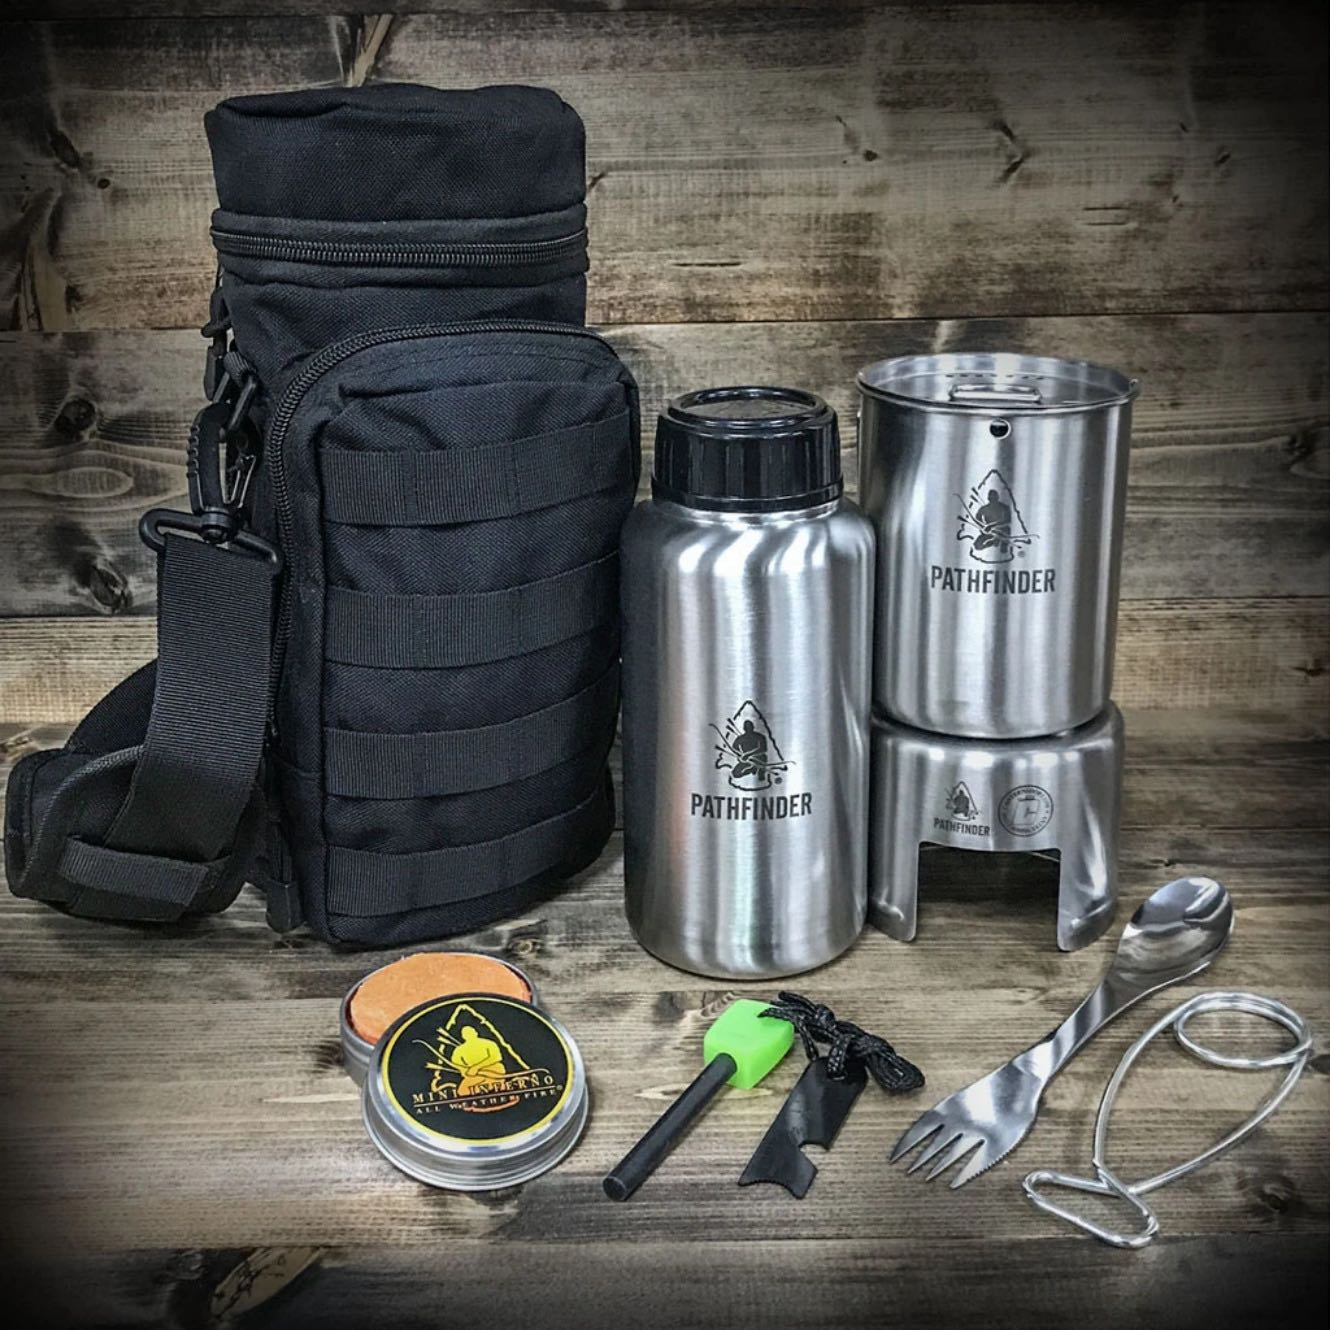 STAINLESS STEEL WATER BOTTLE COOKING KIT WITH BLACK MOLLE BAG - PATHFINDER